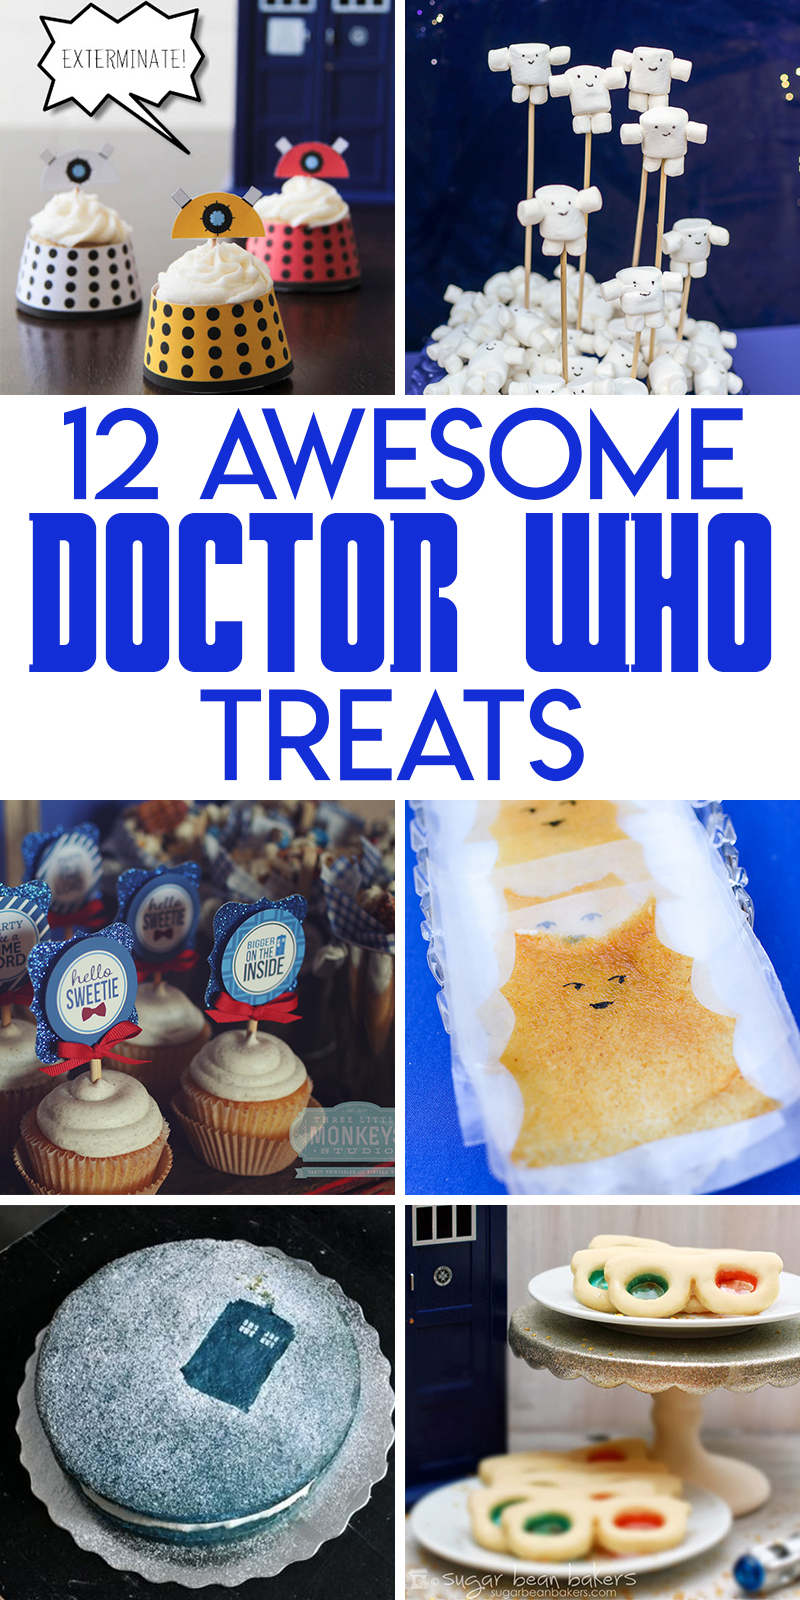 12 out of this world doctor who themed treats to bake and make